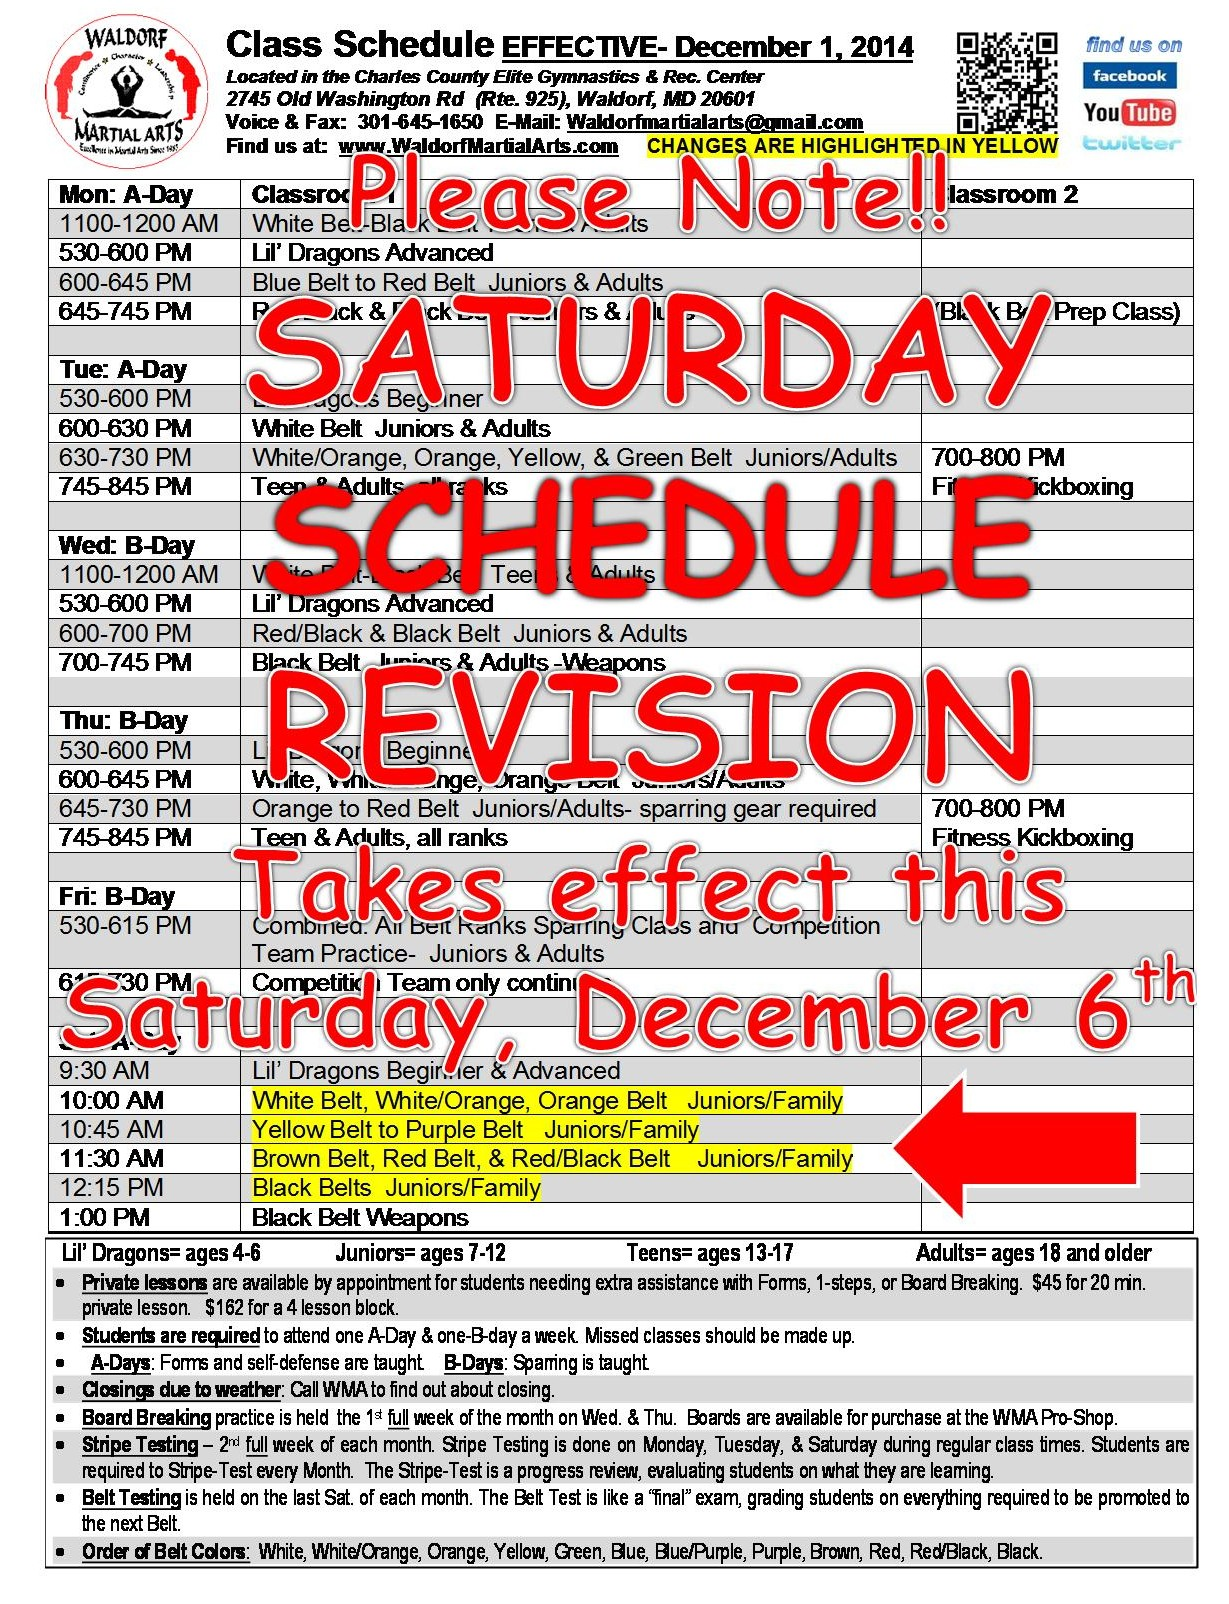 2014-15 New Saturday schedule notice for internet distribution